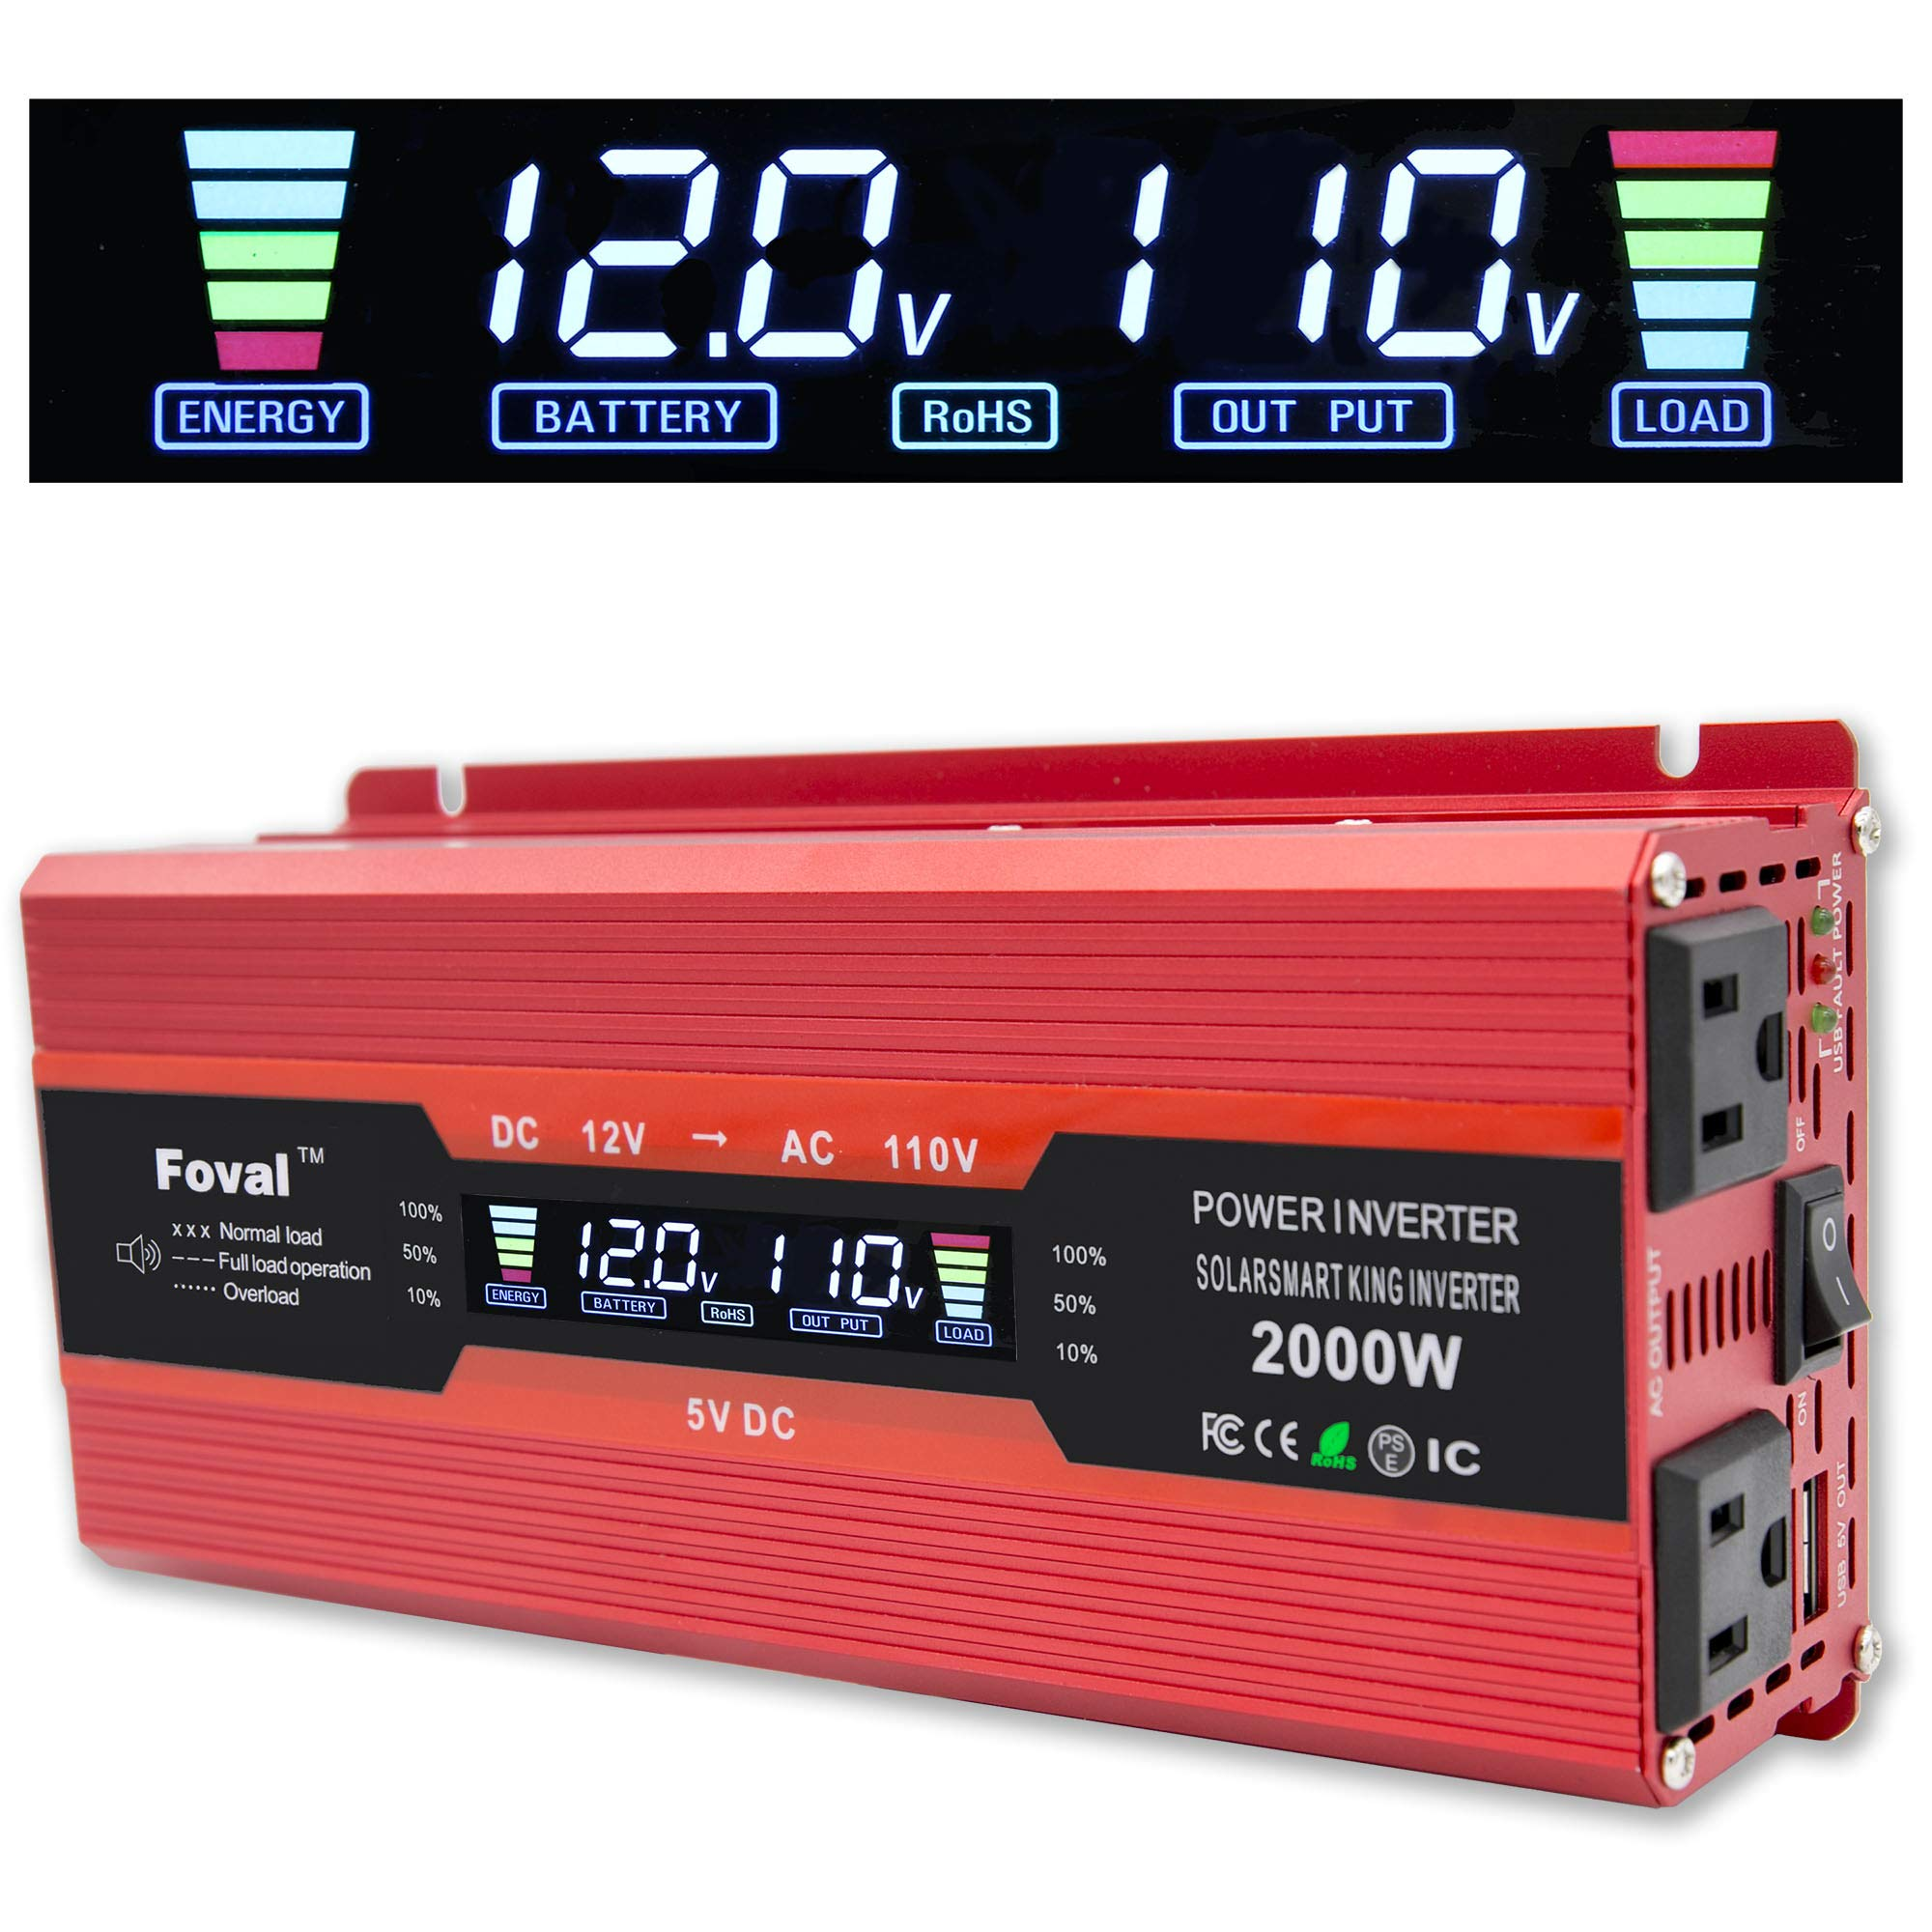 Cantonape 800W/2000W(Peak) Car Power Inverter DC 12V to 110V AC Converter with LCD Display Dual AC Outlets and Dual USB Car Charger for Car Home Laptop Truck